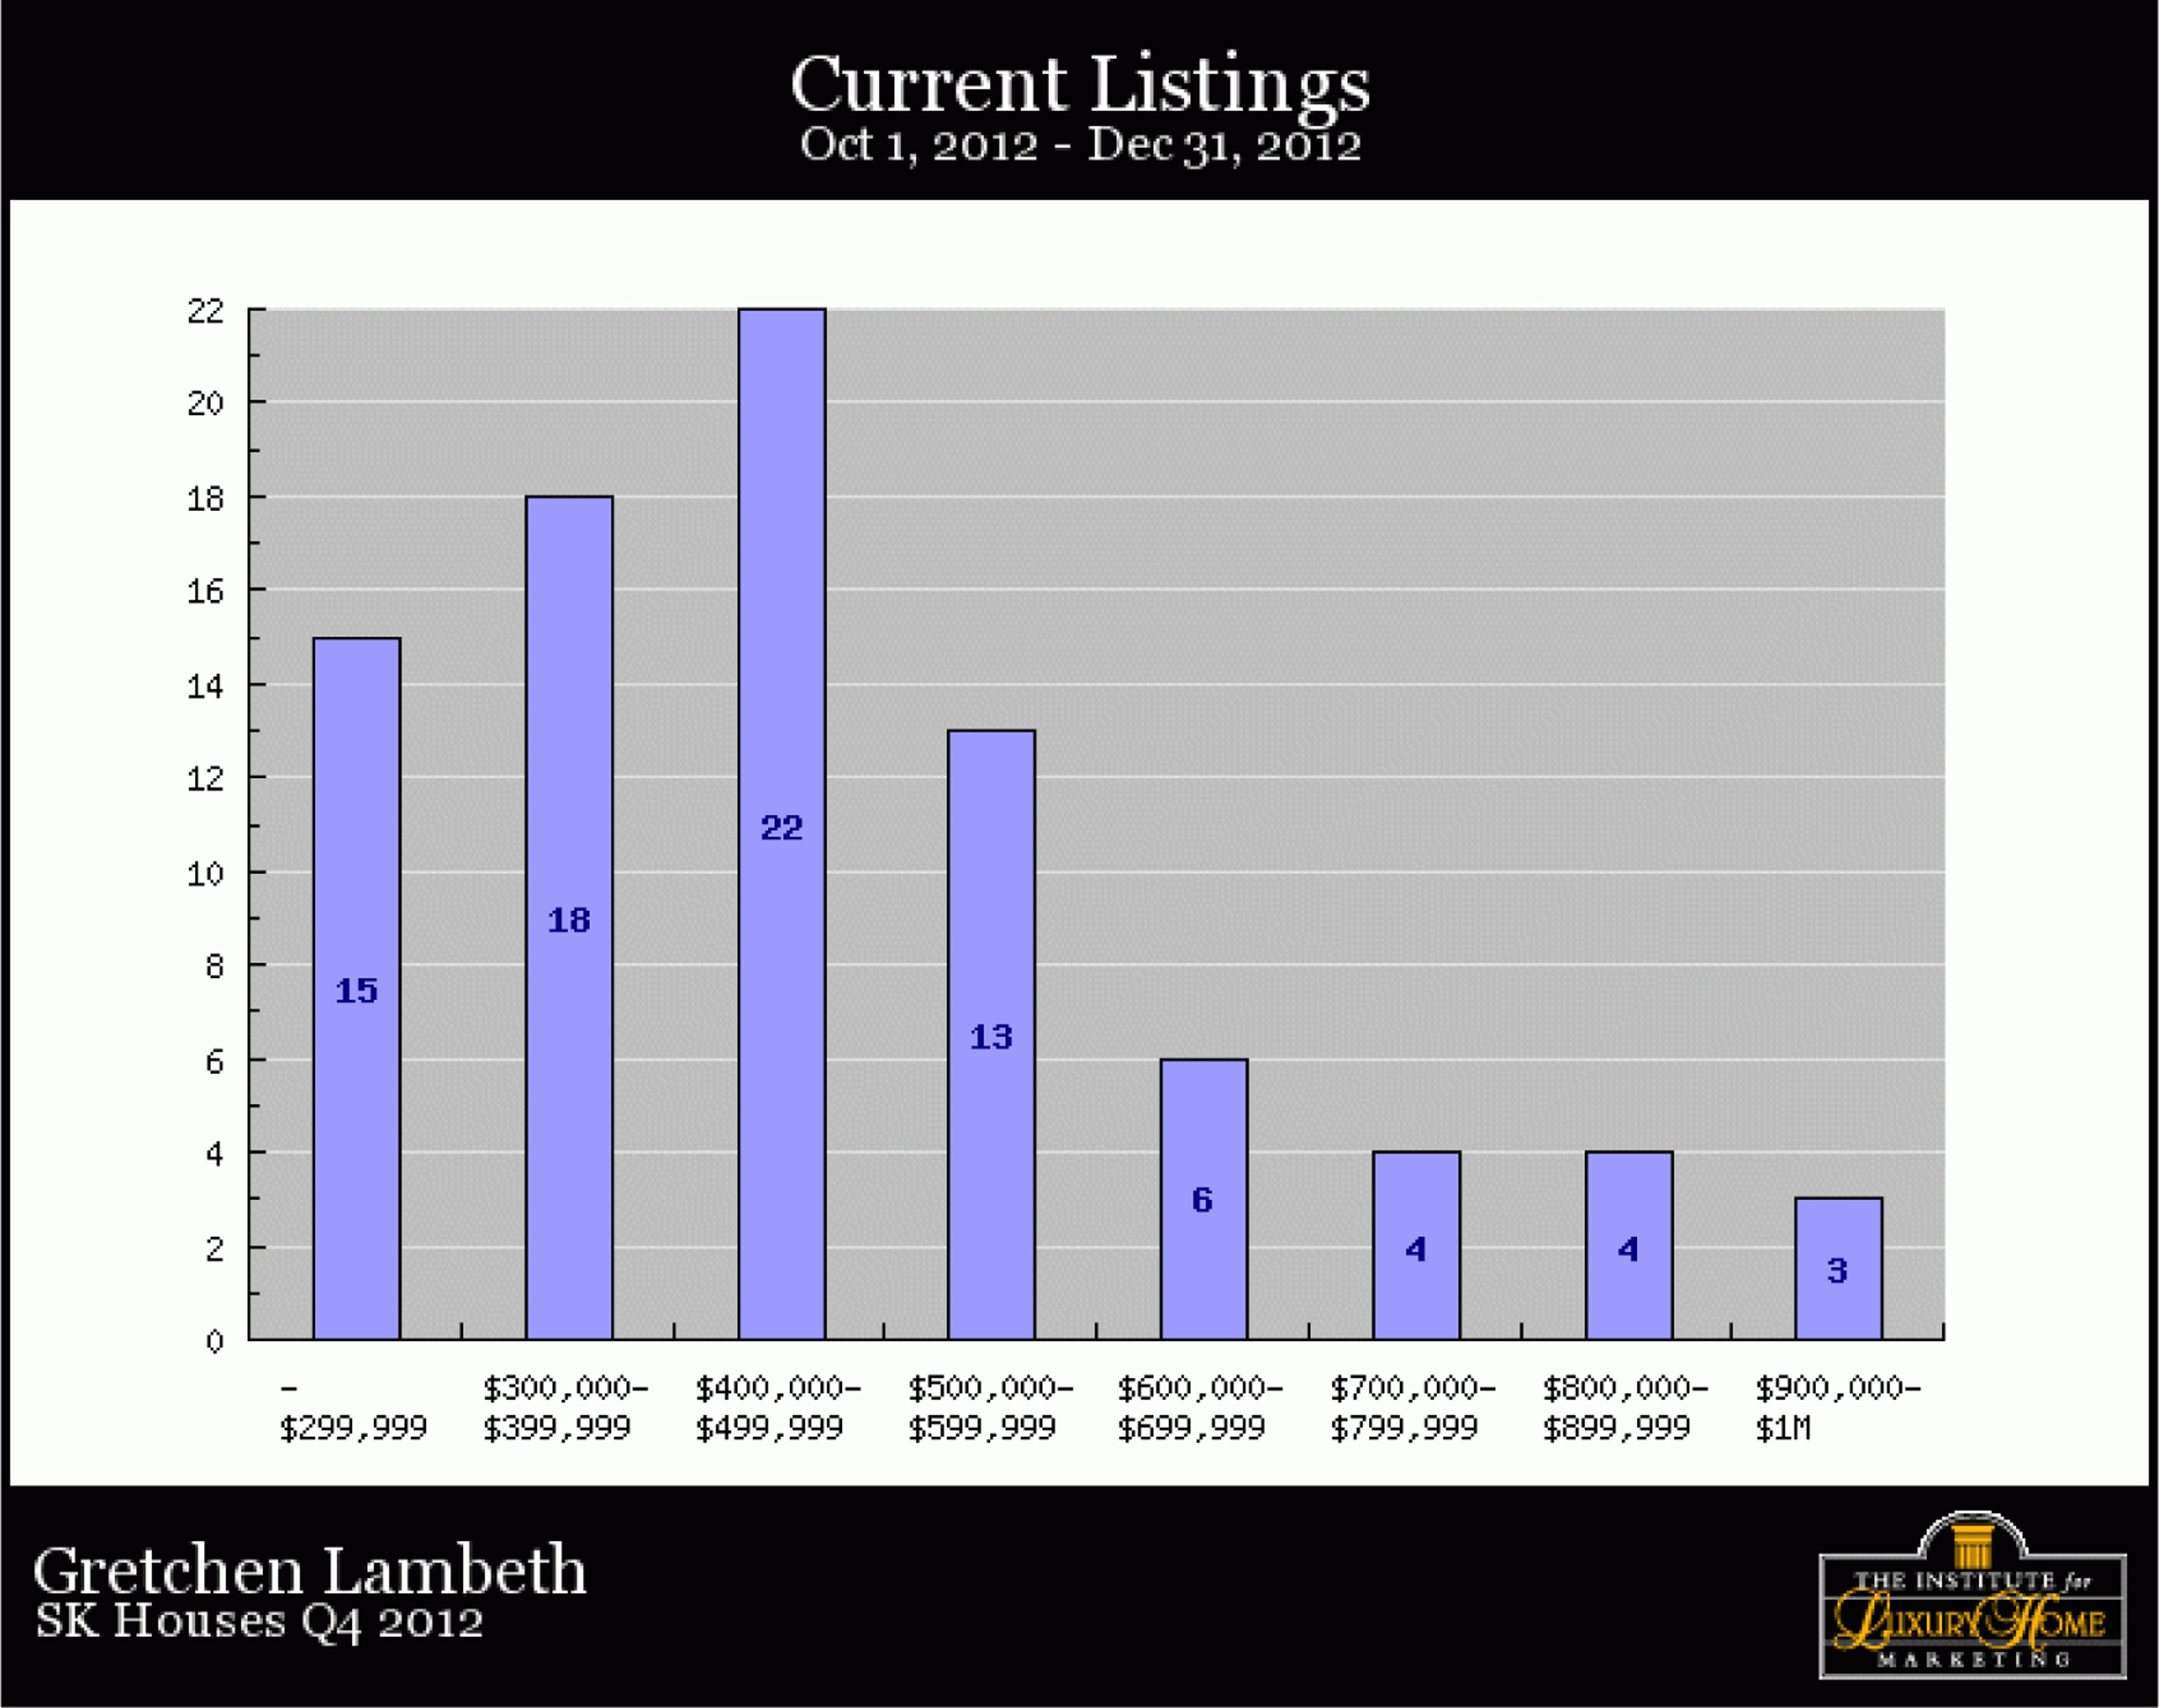 SK-Homes-Q4-2012-currentlistings